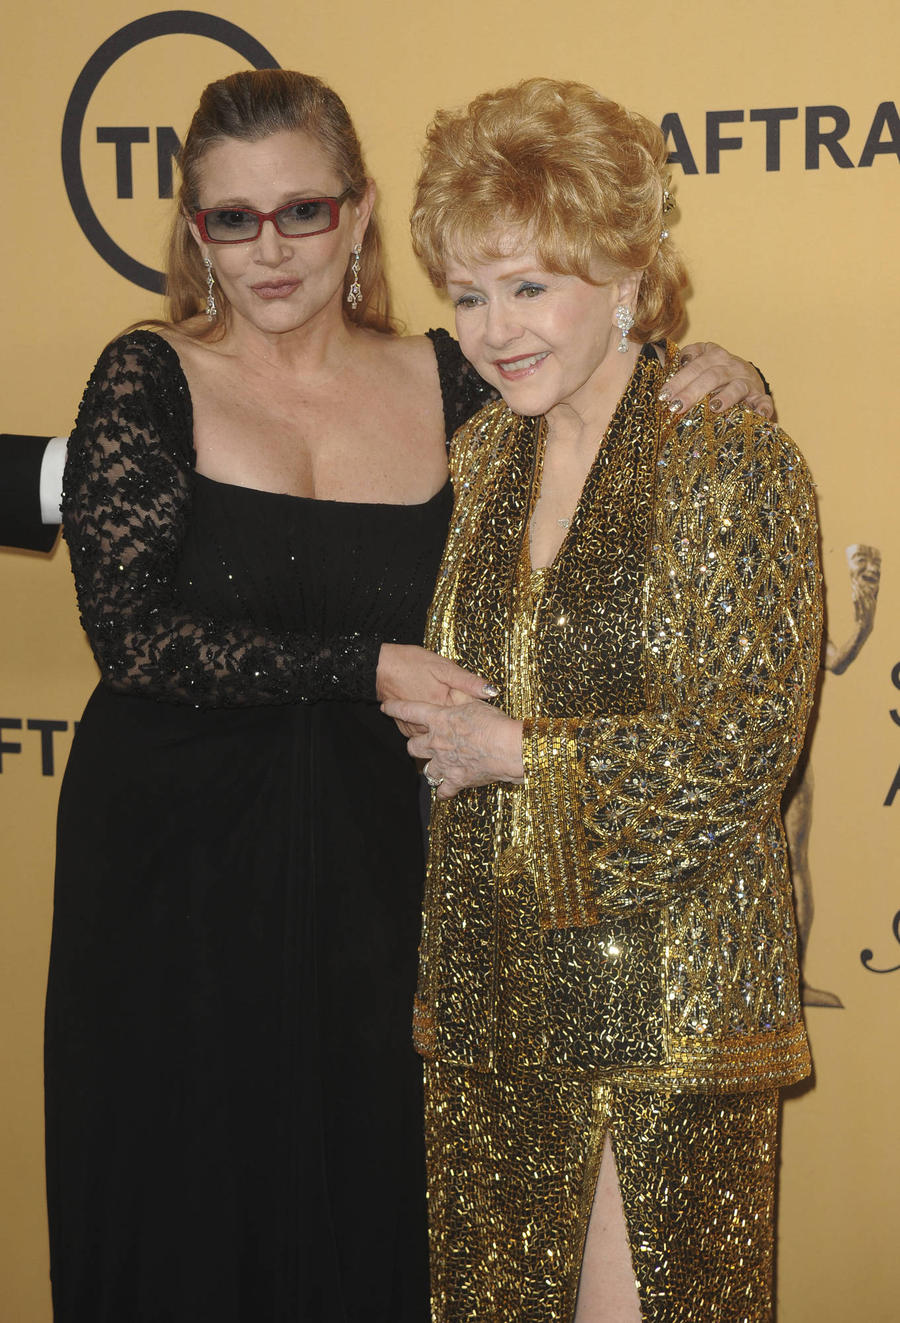 Carrie Fisher And Debbie Reynolds' Public Memorial To Be Live Streamed